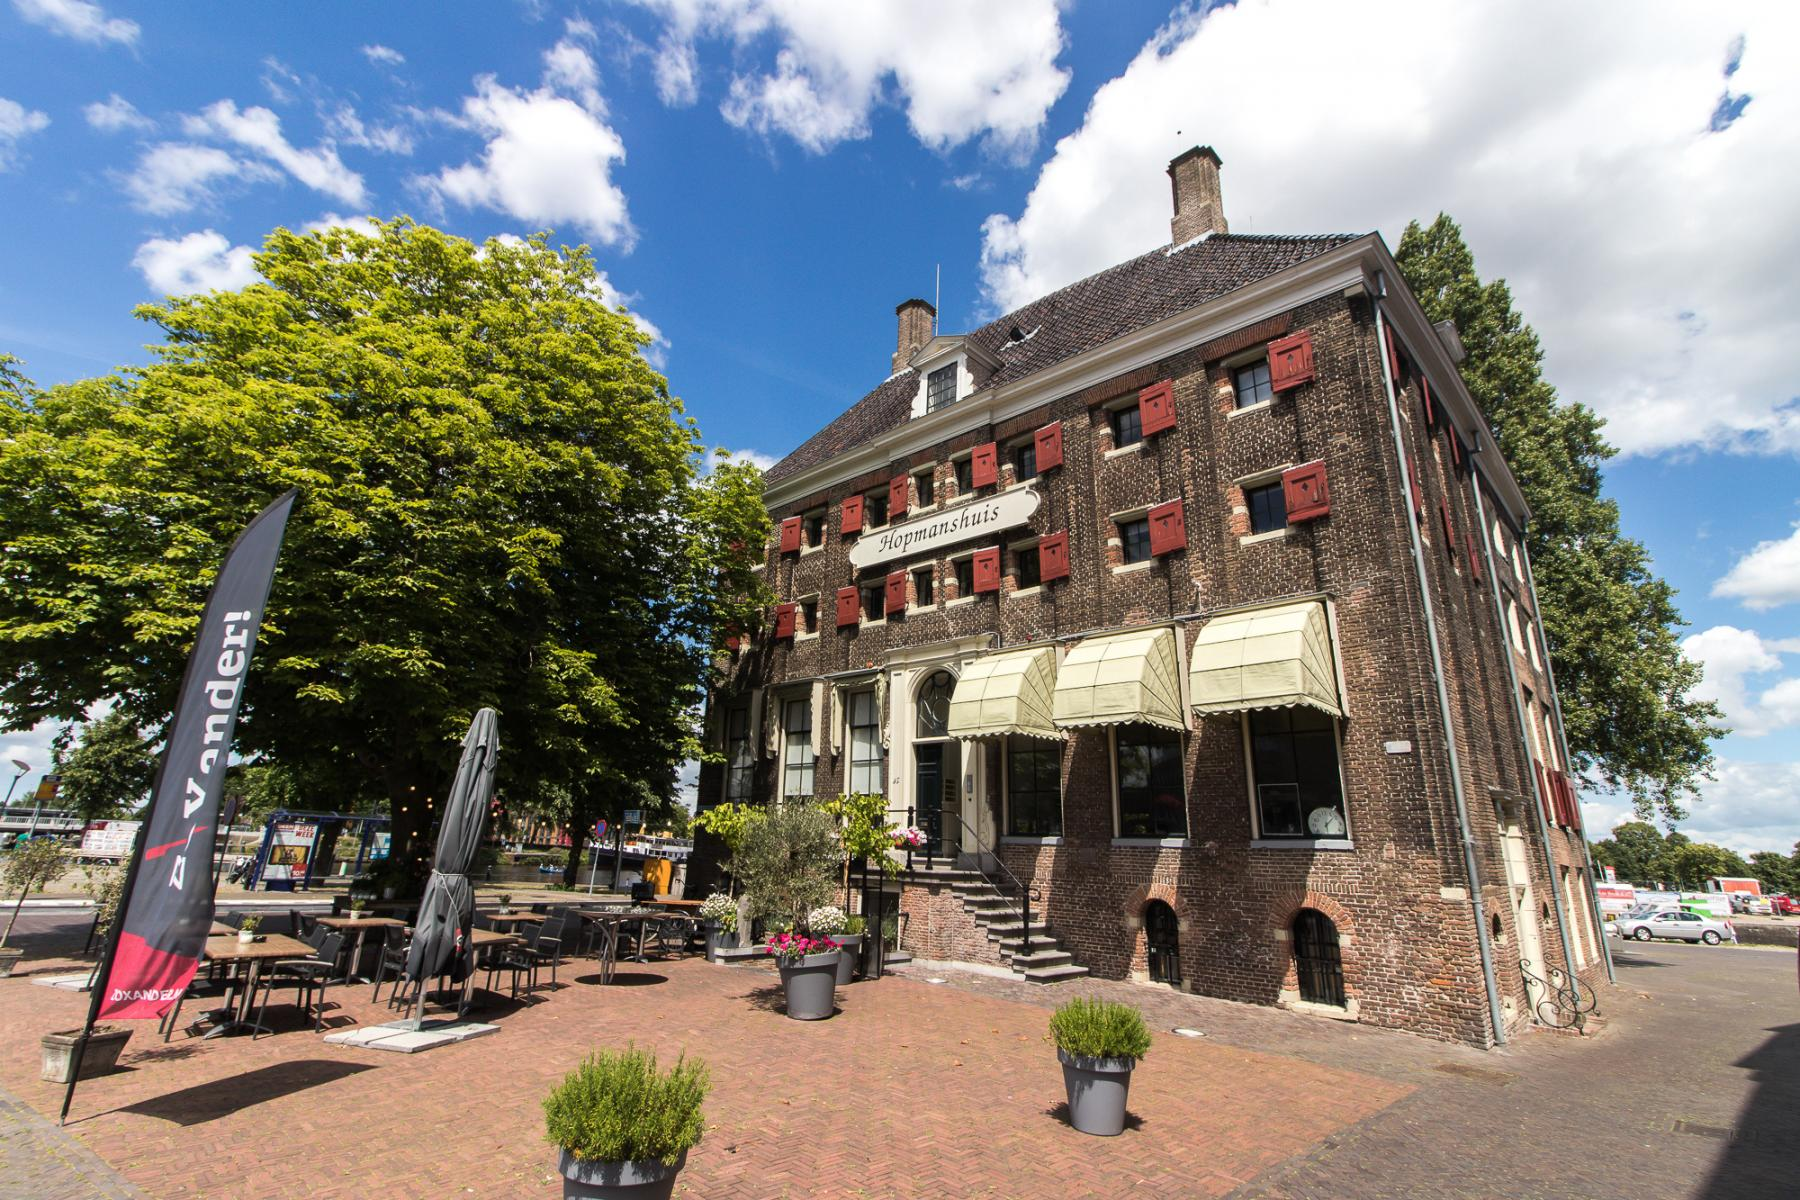 Office spaces for rent in monumental office building in Zwolle